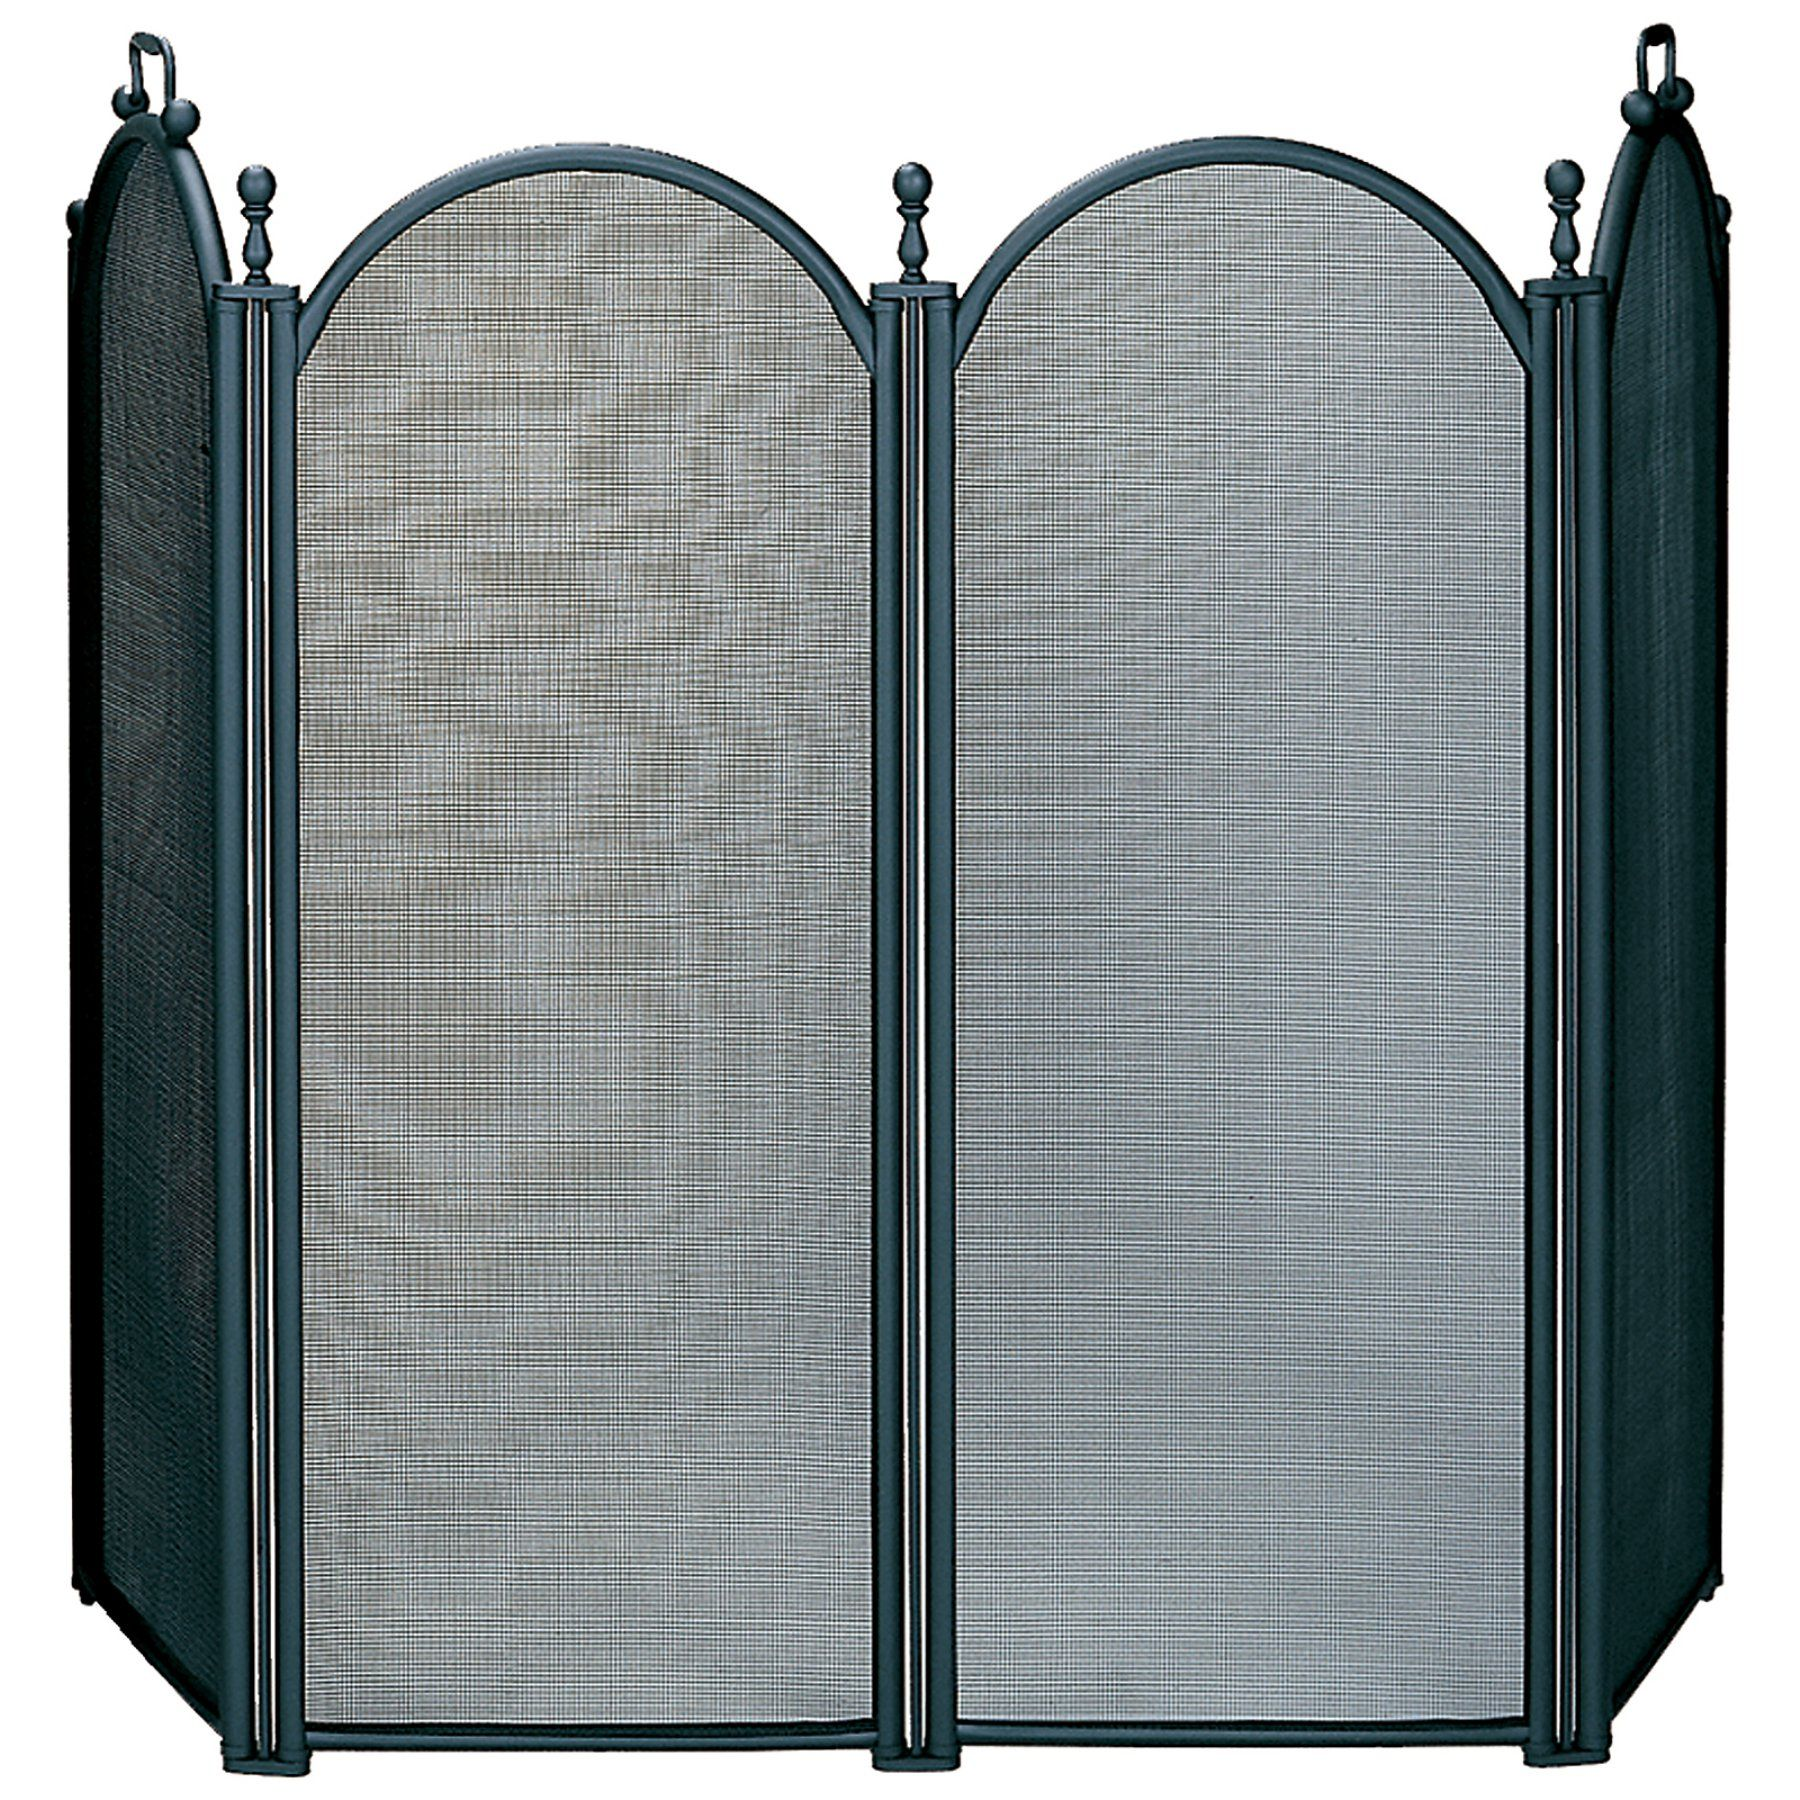 uniflame 4 panel deluxe plated woven mesh fireplace screen s 3650